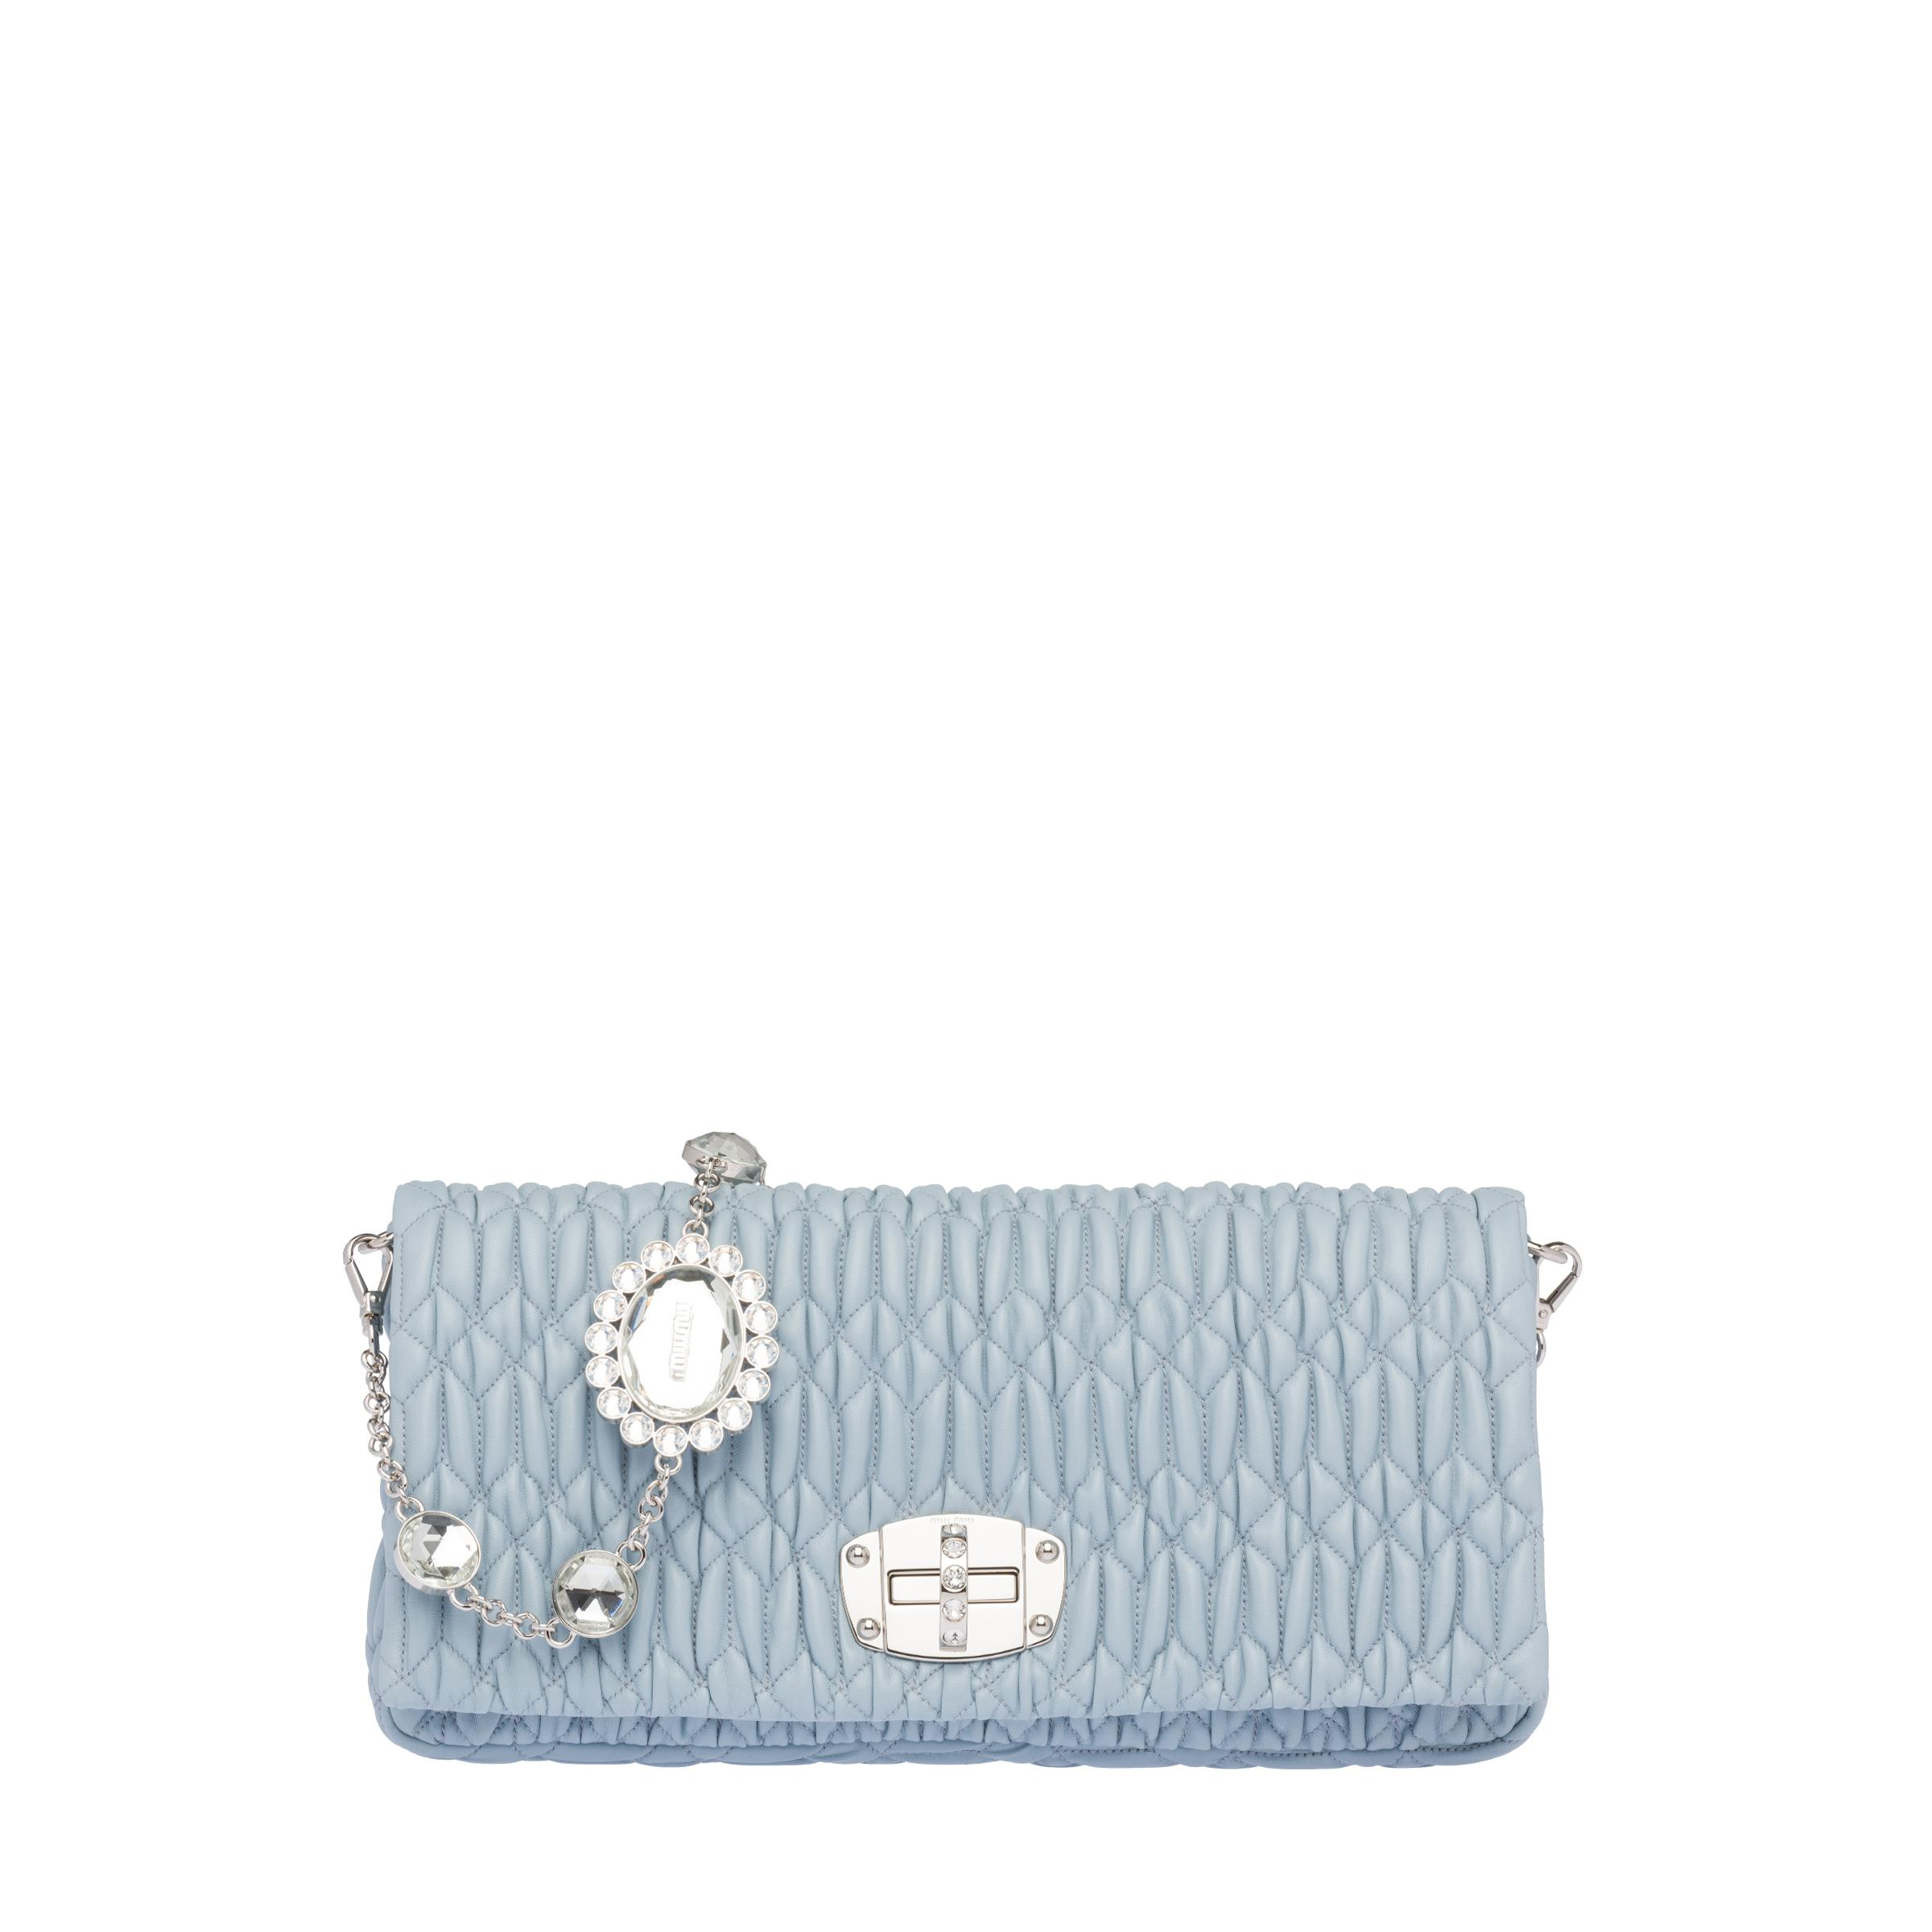 Iconic Crystal Cloqué Nappa Leather Bag Women Navy